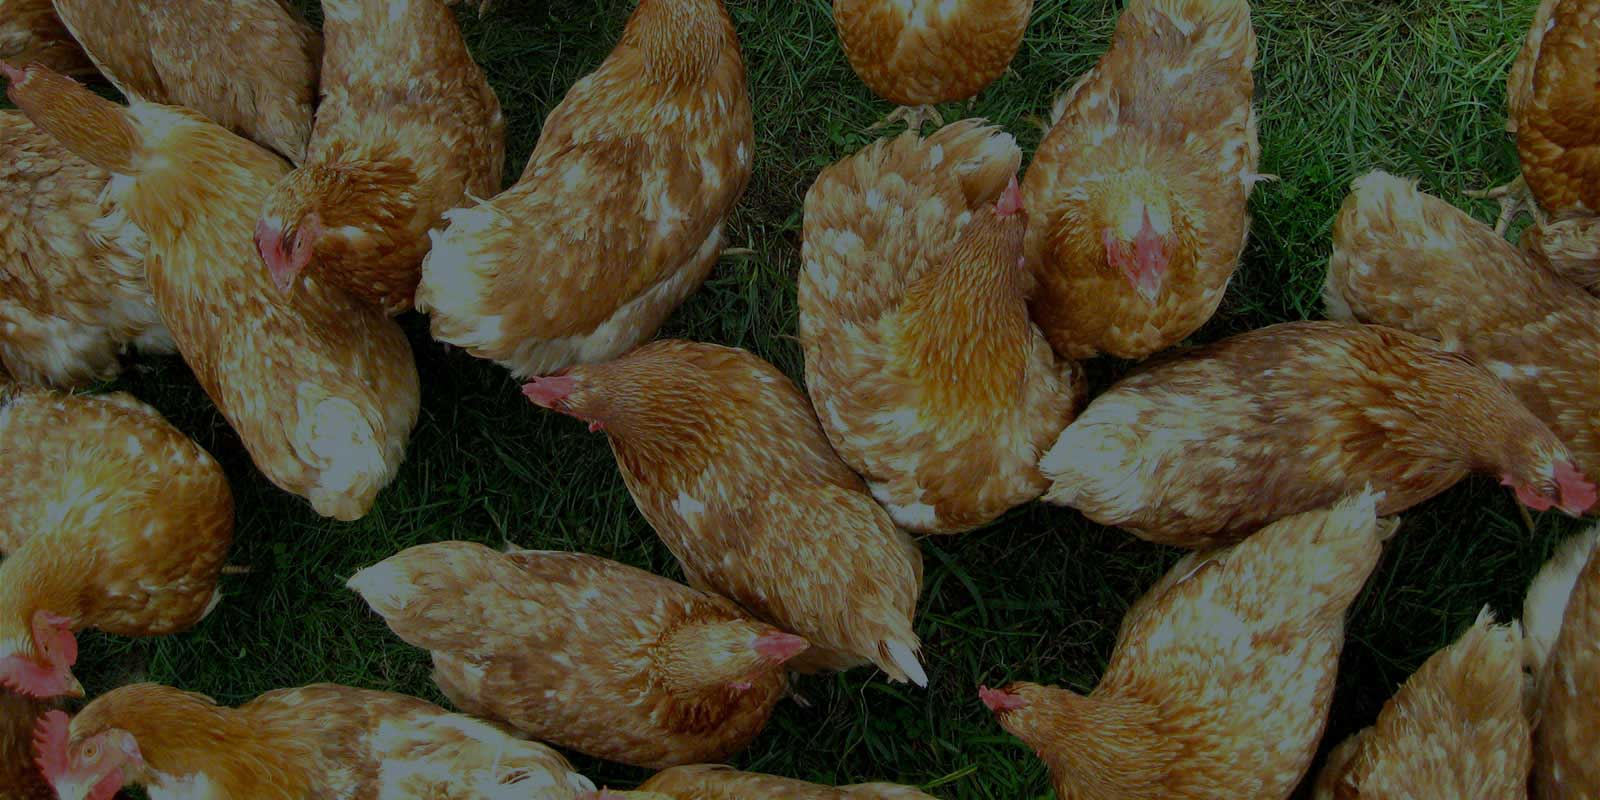 backgrounds/background-poultry.jpg